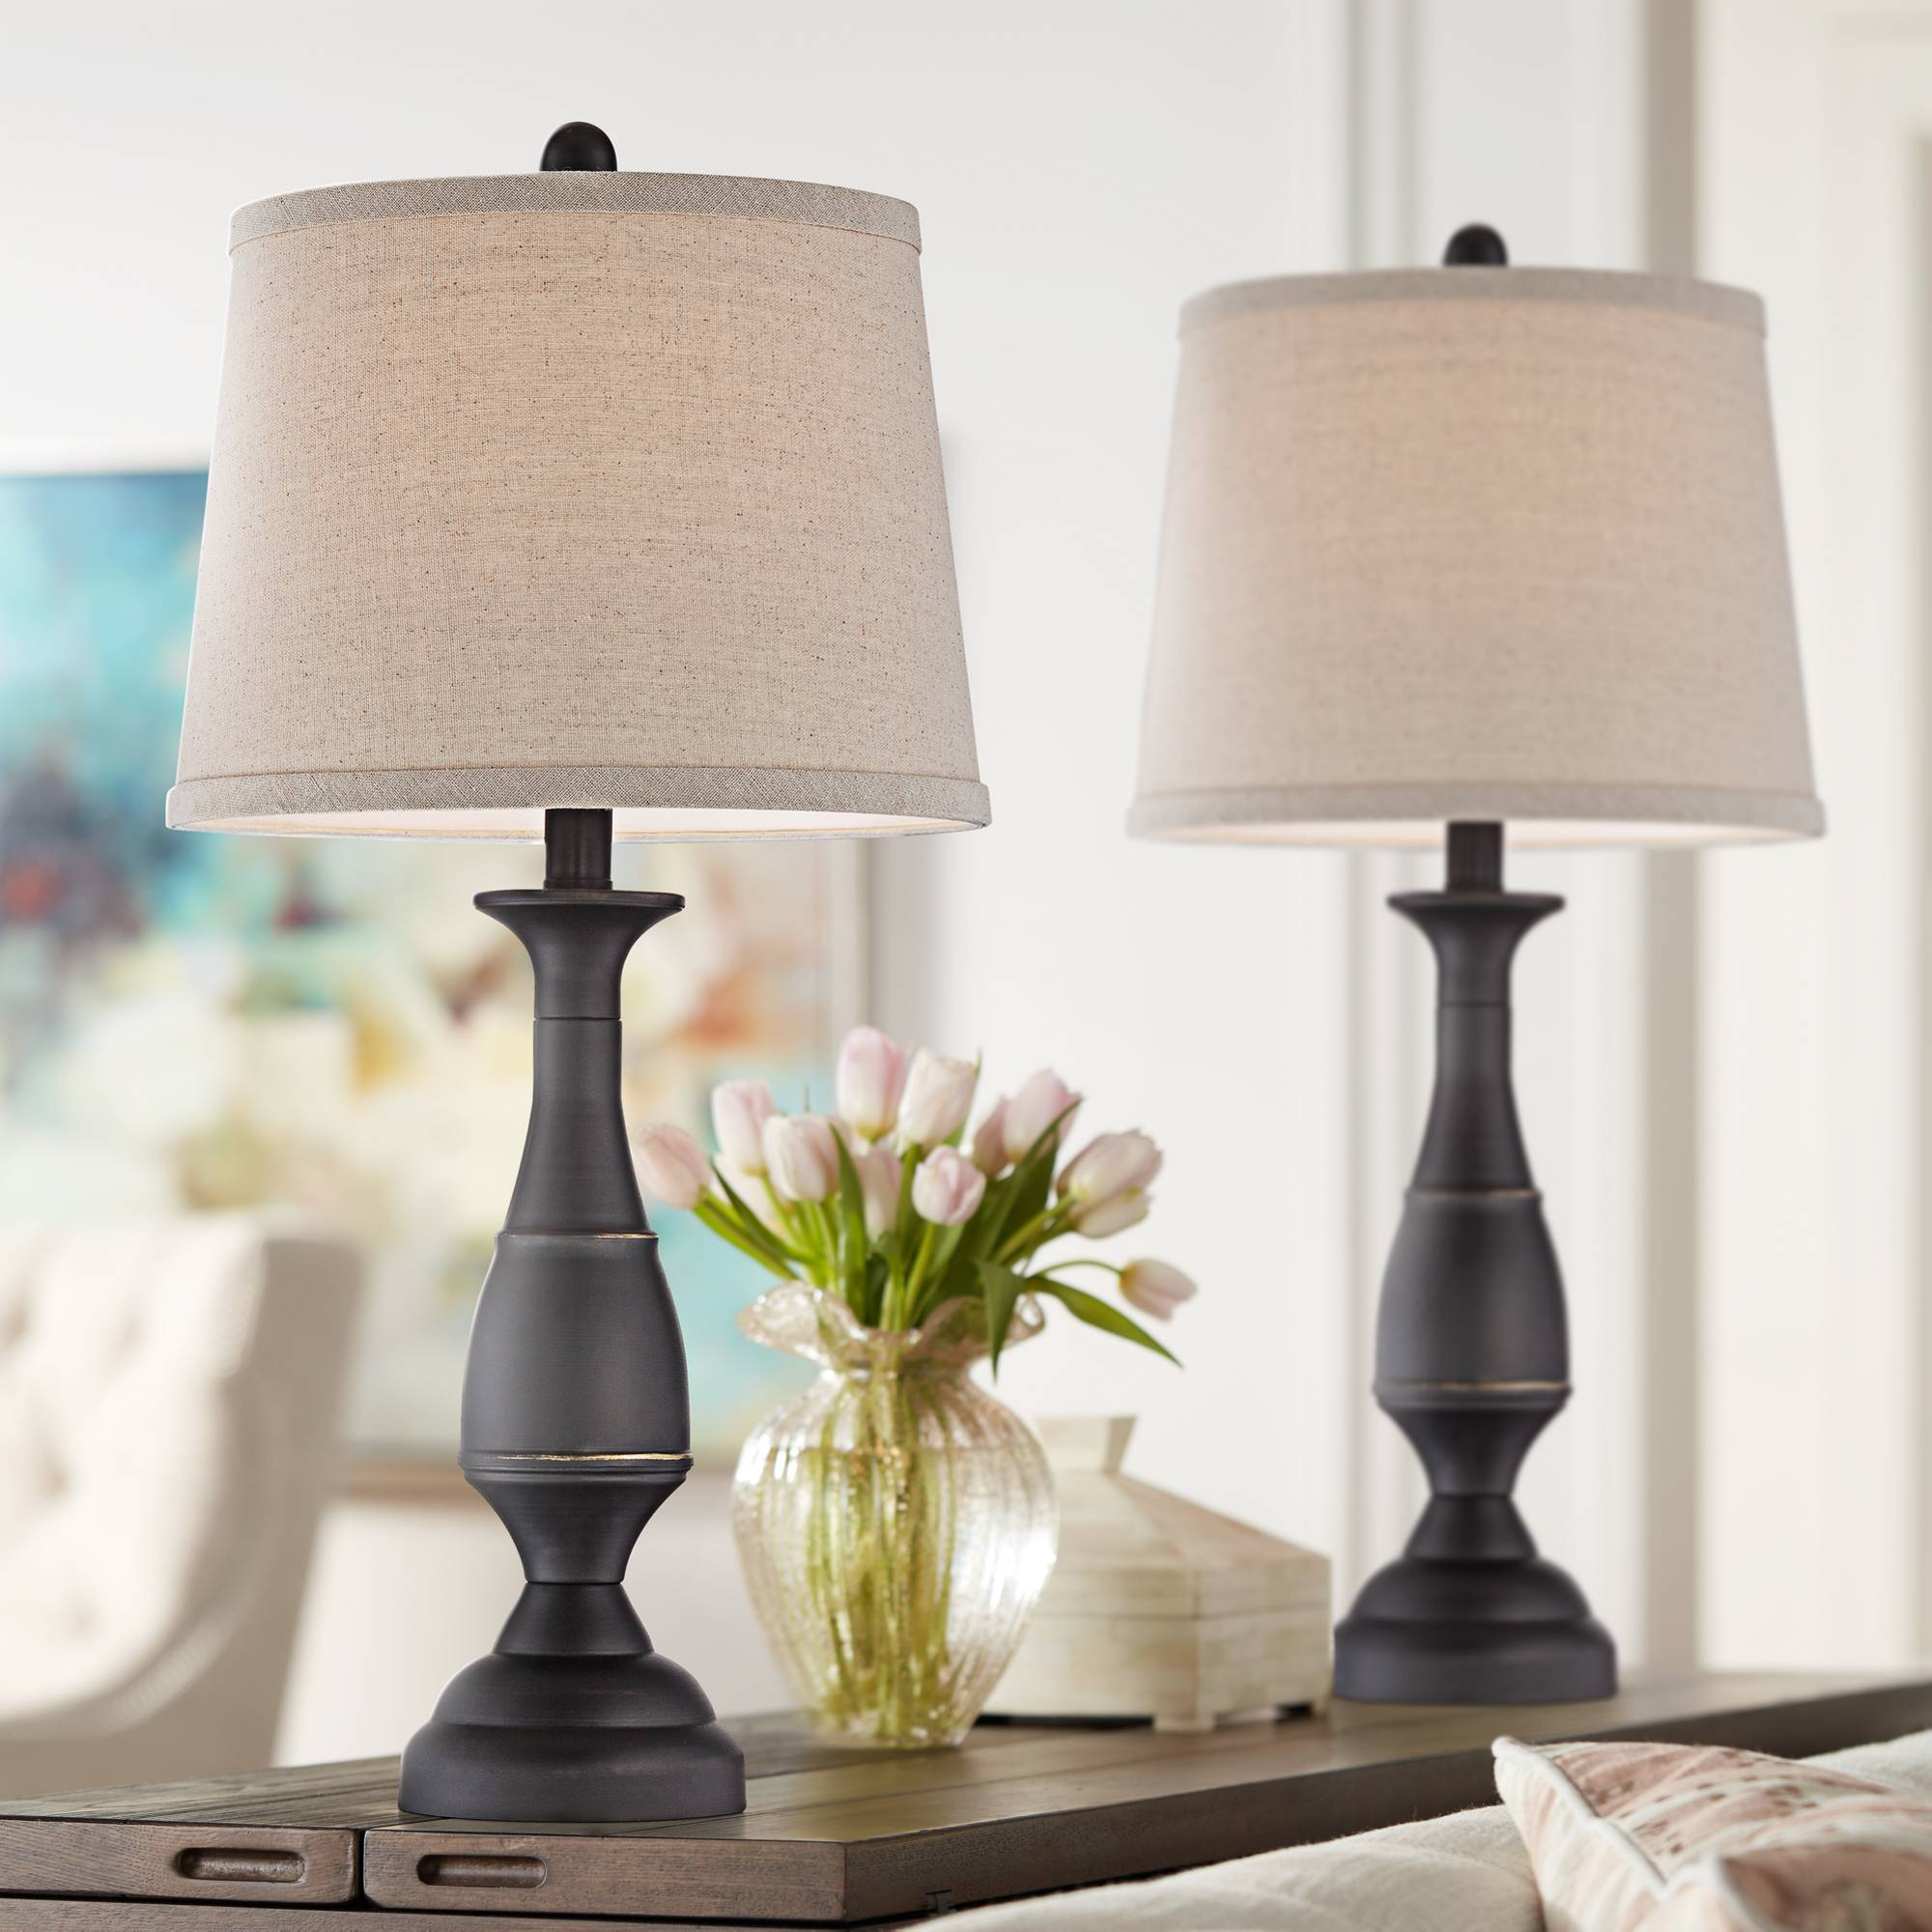 Details about Traditional Table Lamps Set of 2 Dark Bronze Metal for Living  Room Bedroom